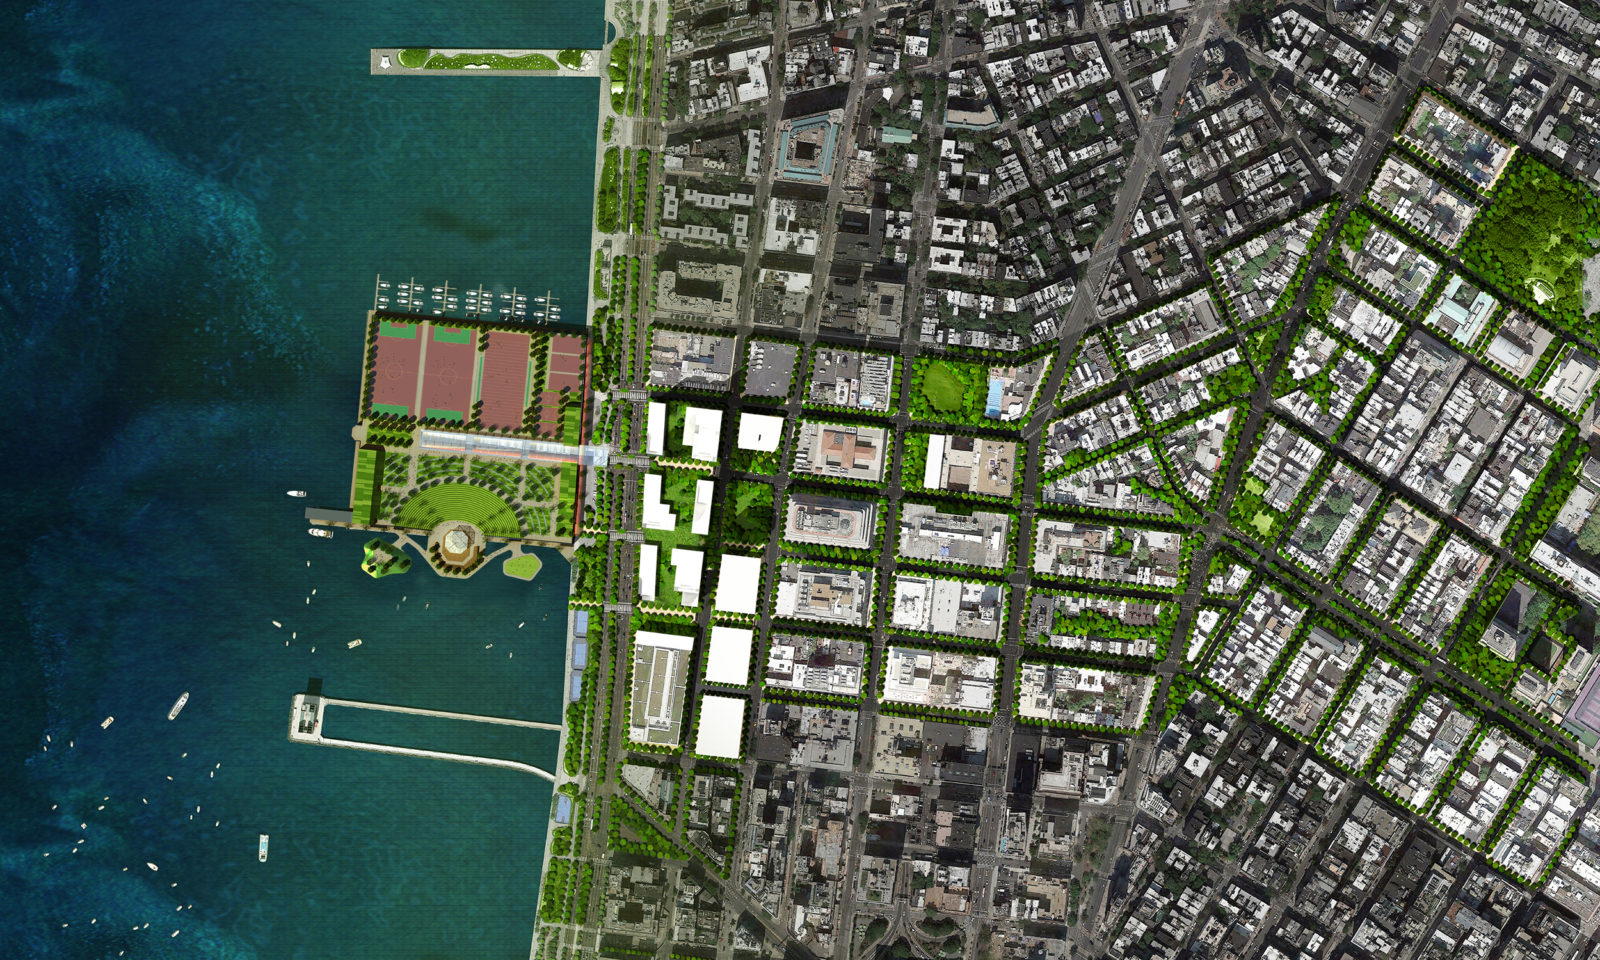 Ideal cities: a tribute to Michael Sorkin